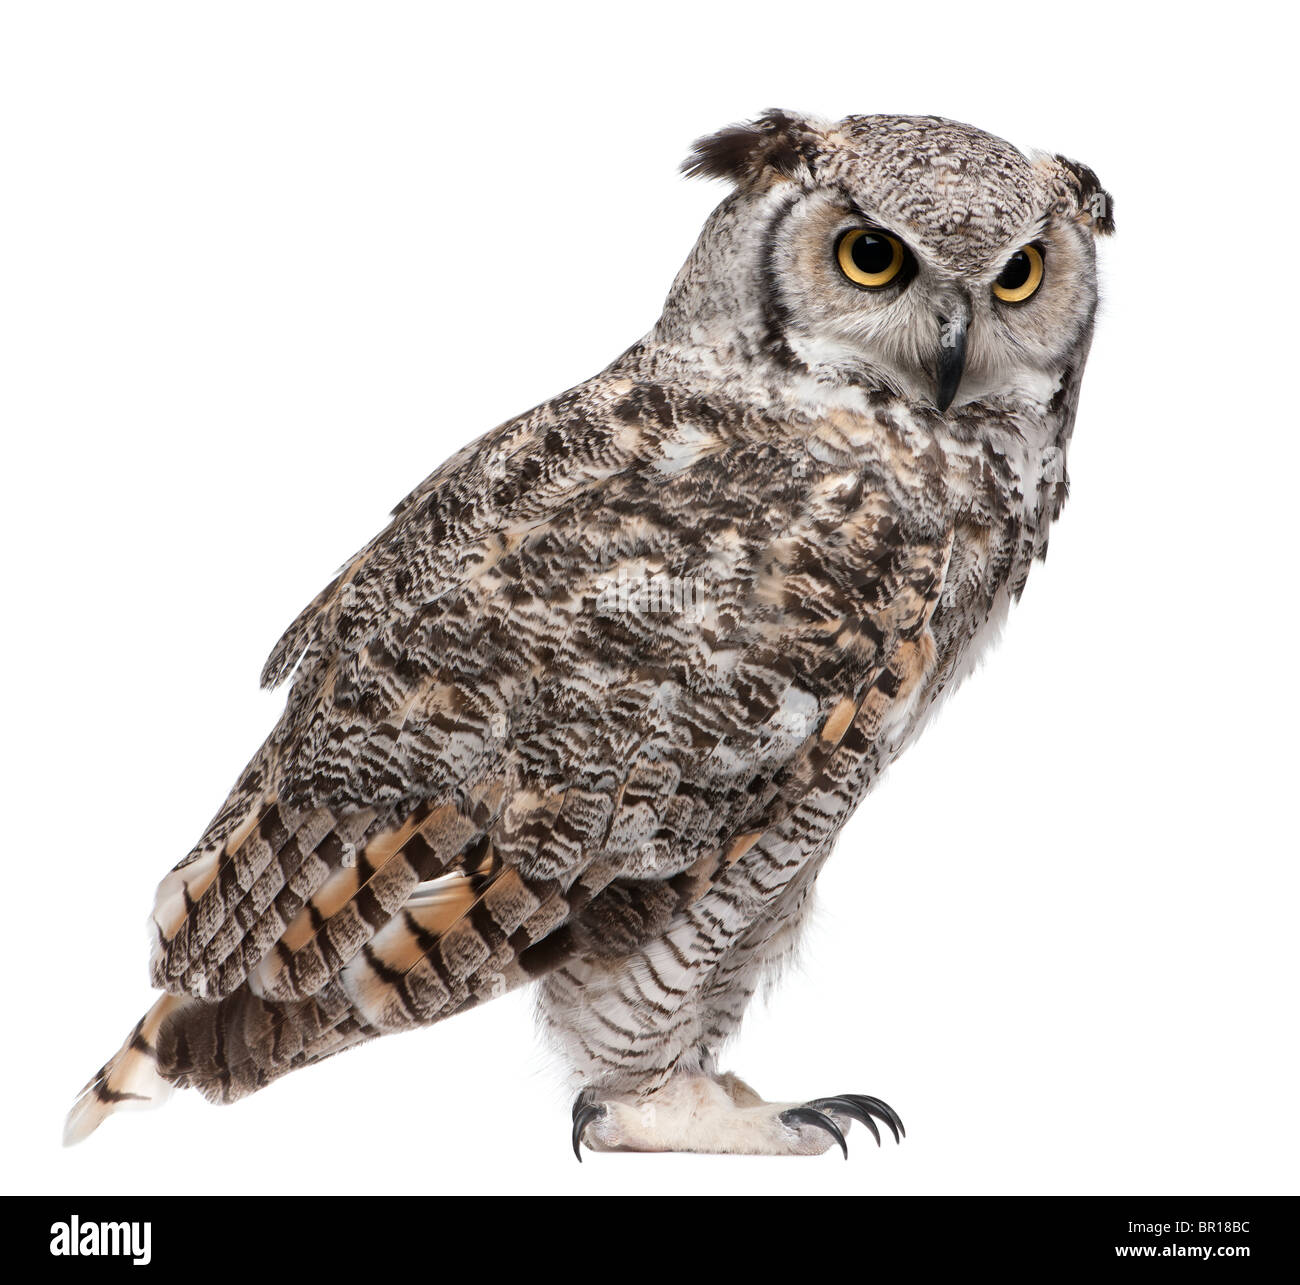 Great Horned Owl, Bubo Virginianus Subarcticus, in front of white background - Stock Image